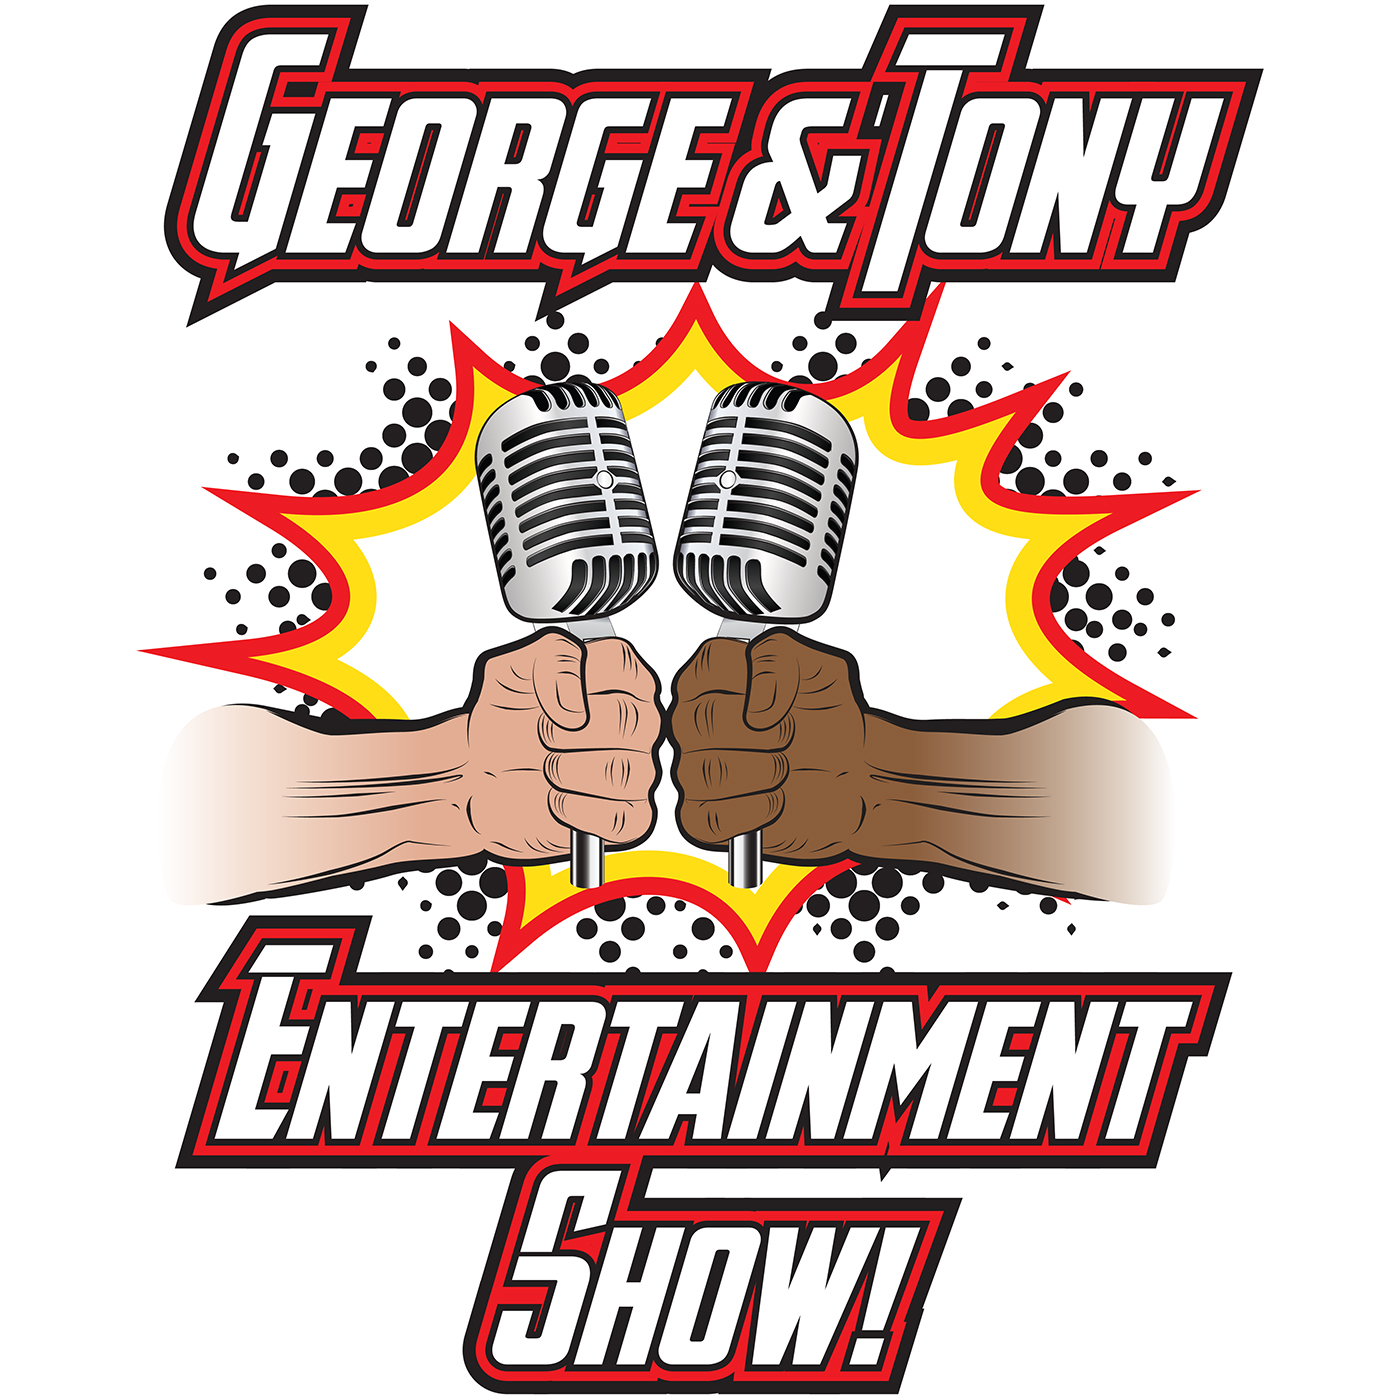 George and Tony Entertainment Show #123